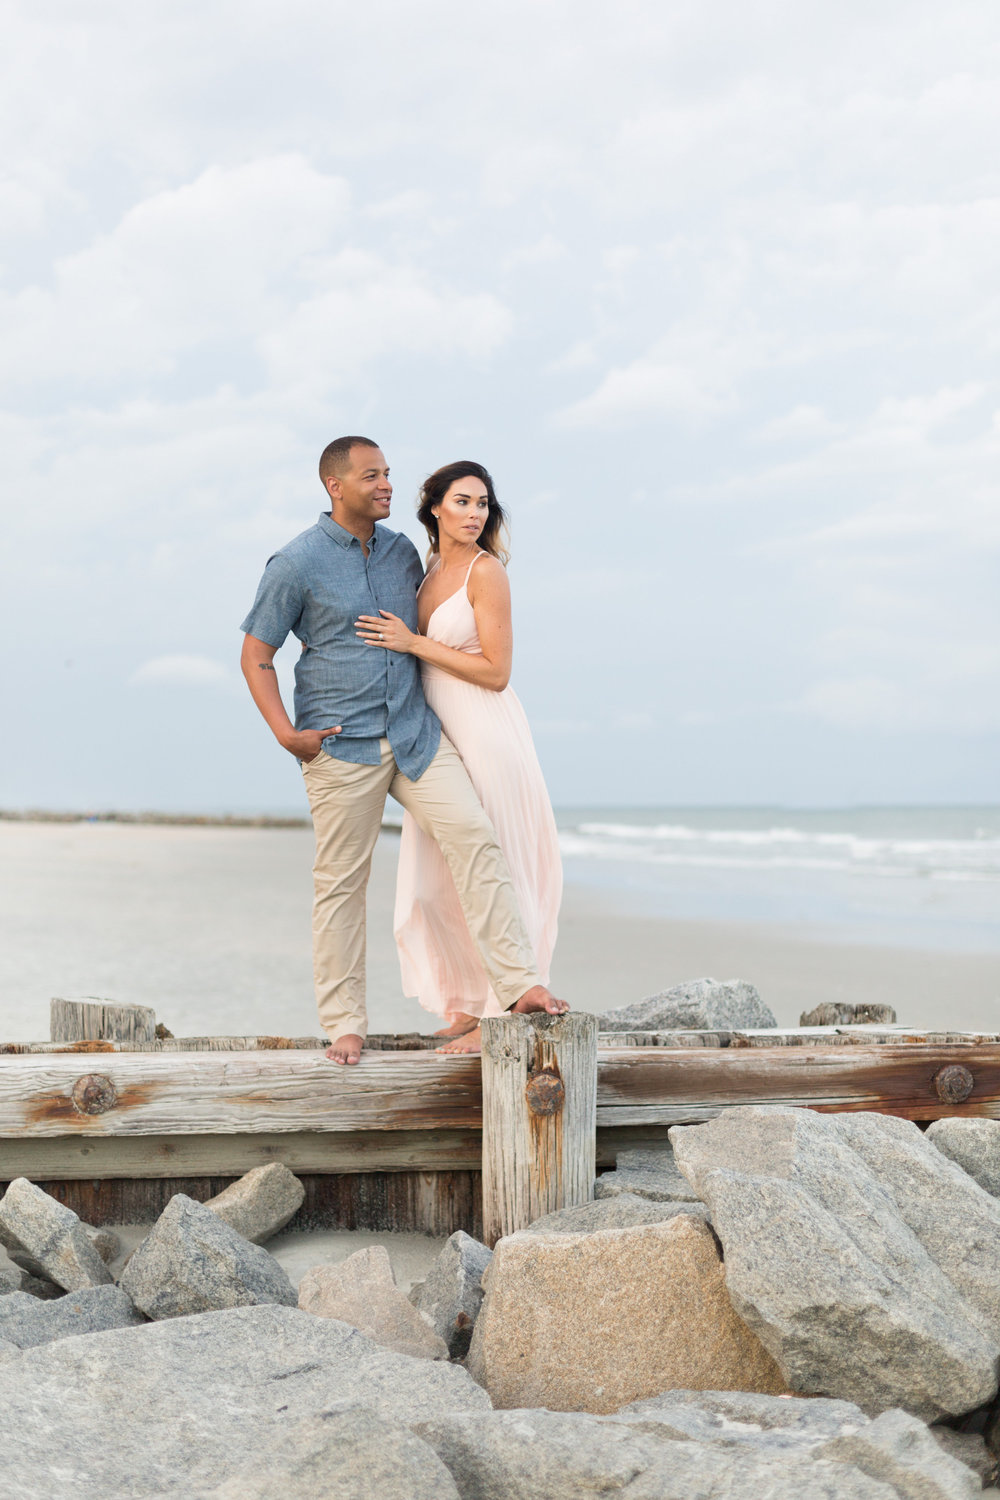 Lowcountry Engagement Session in Myrtle Beach, SC